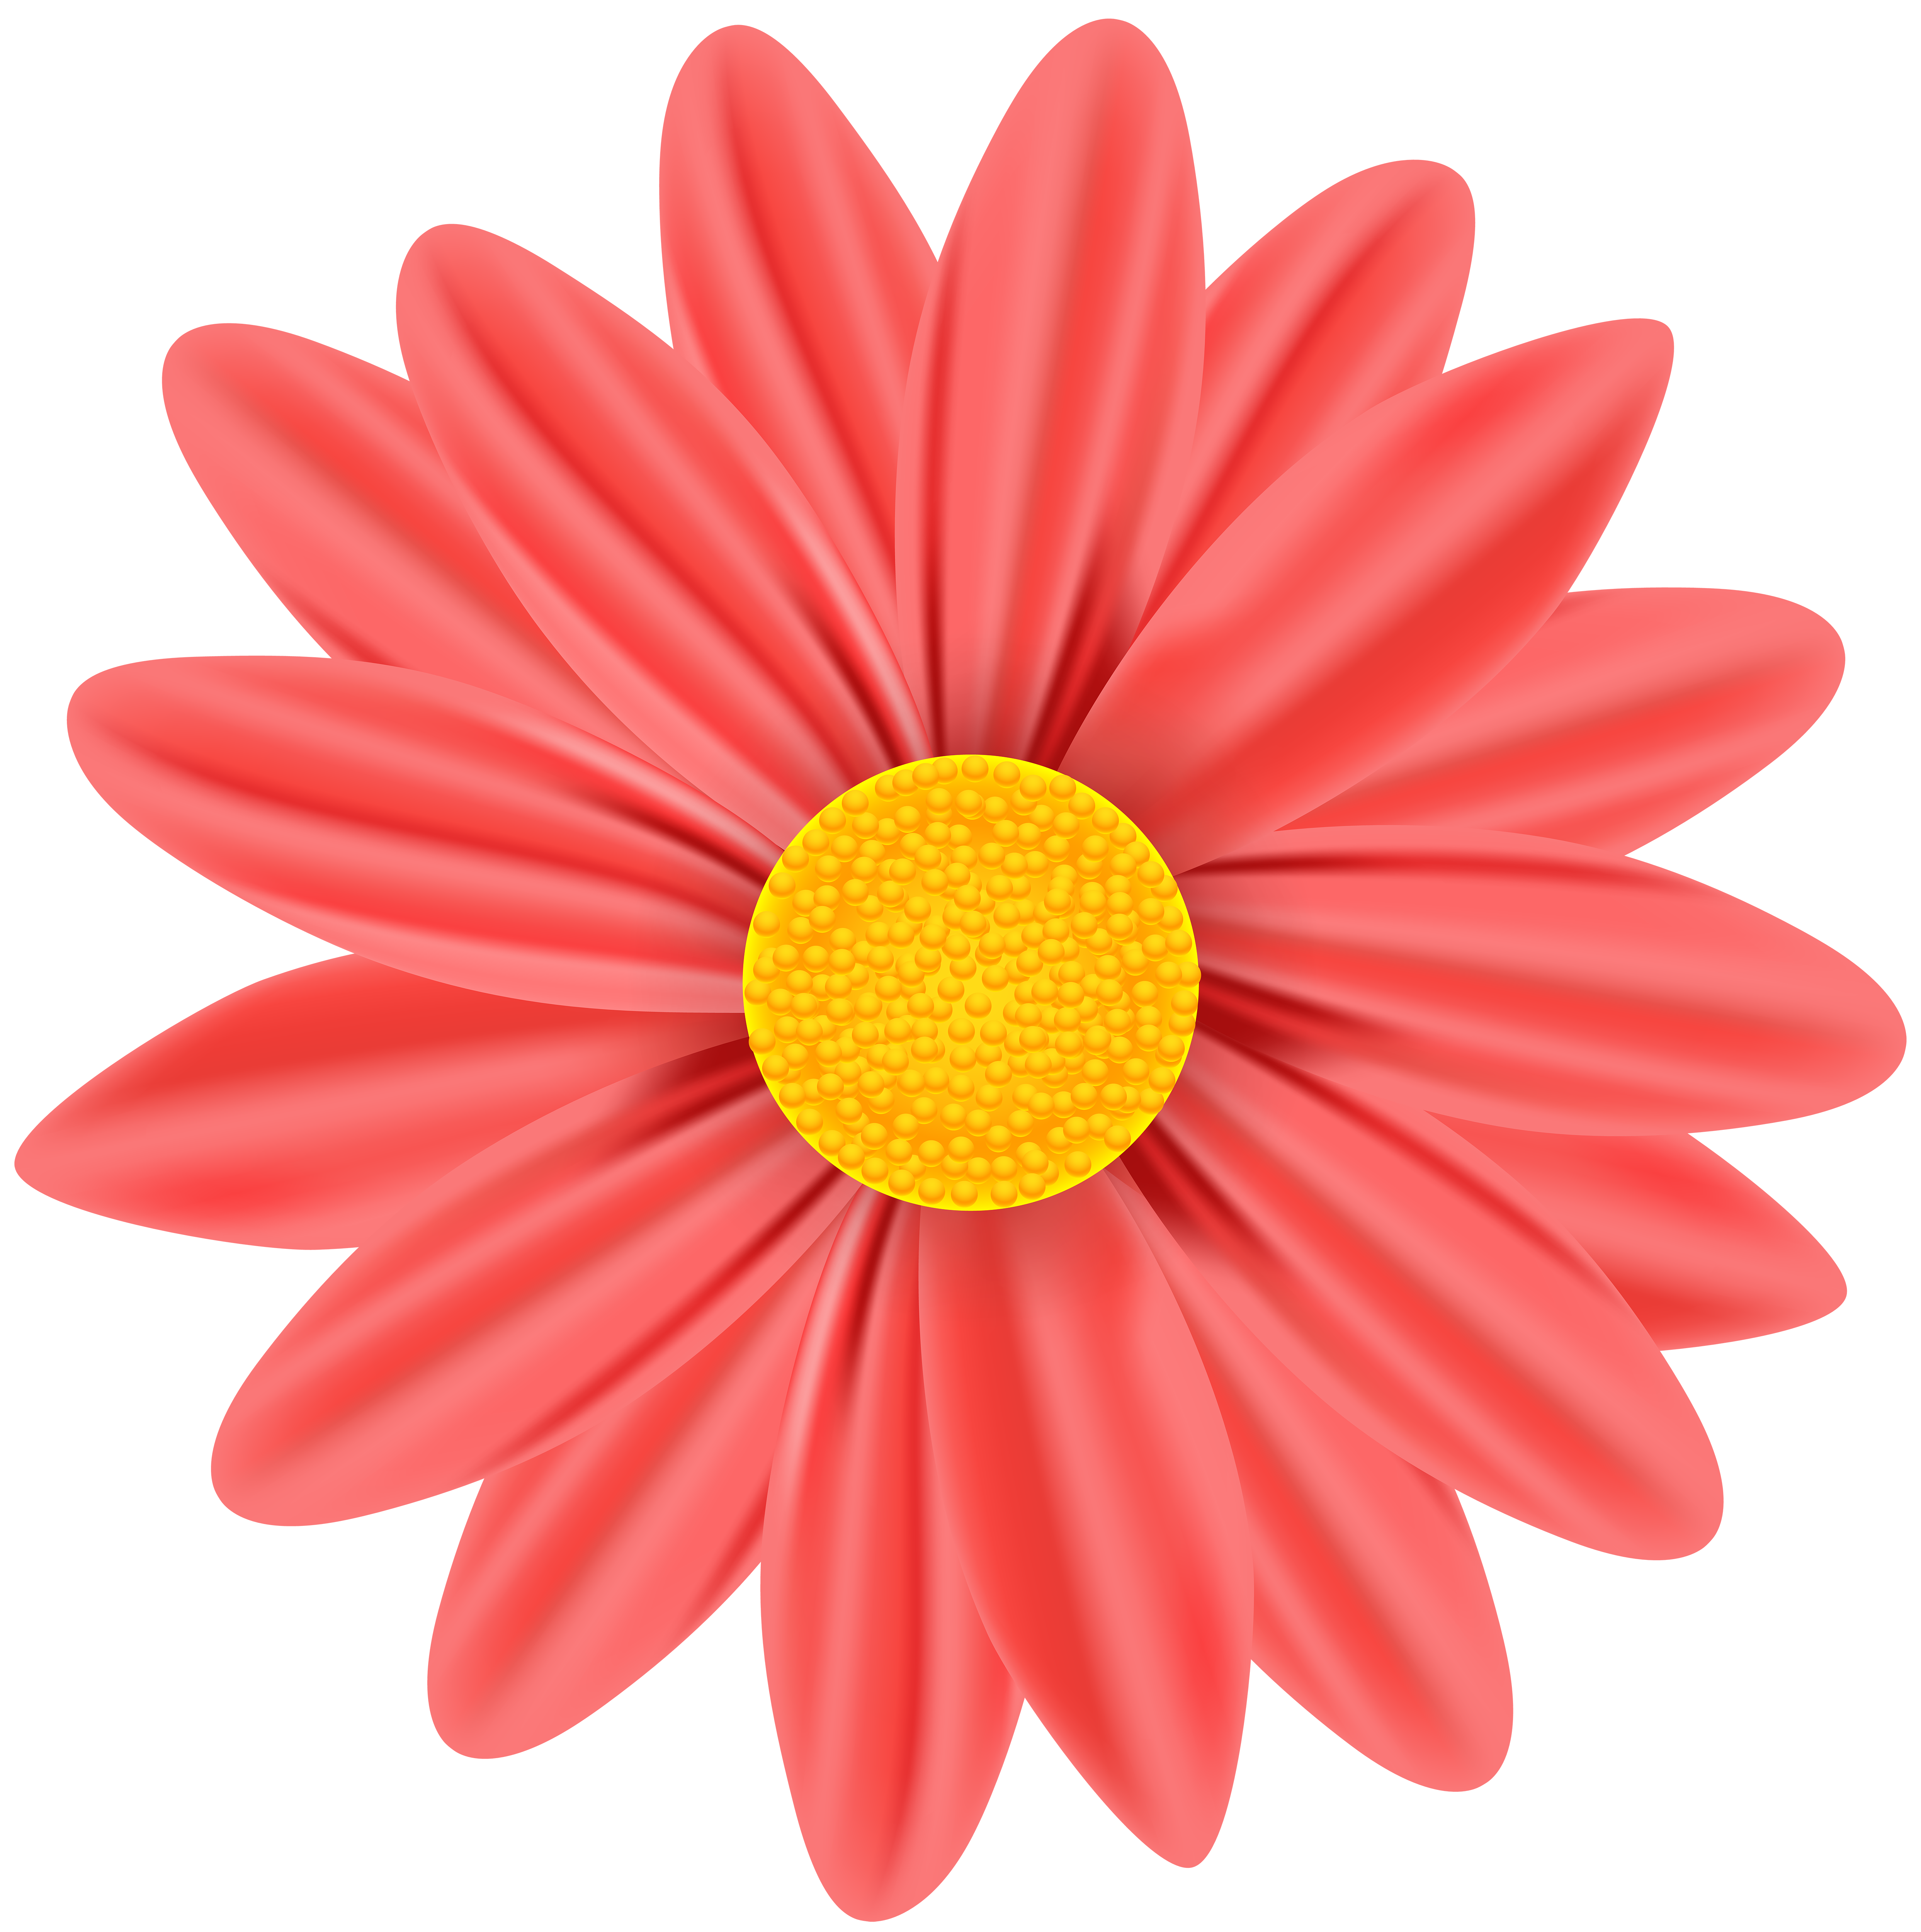 Red Daisy PNG Clip Art Image.